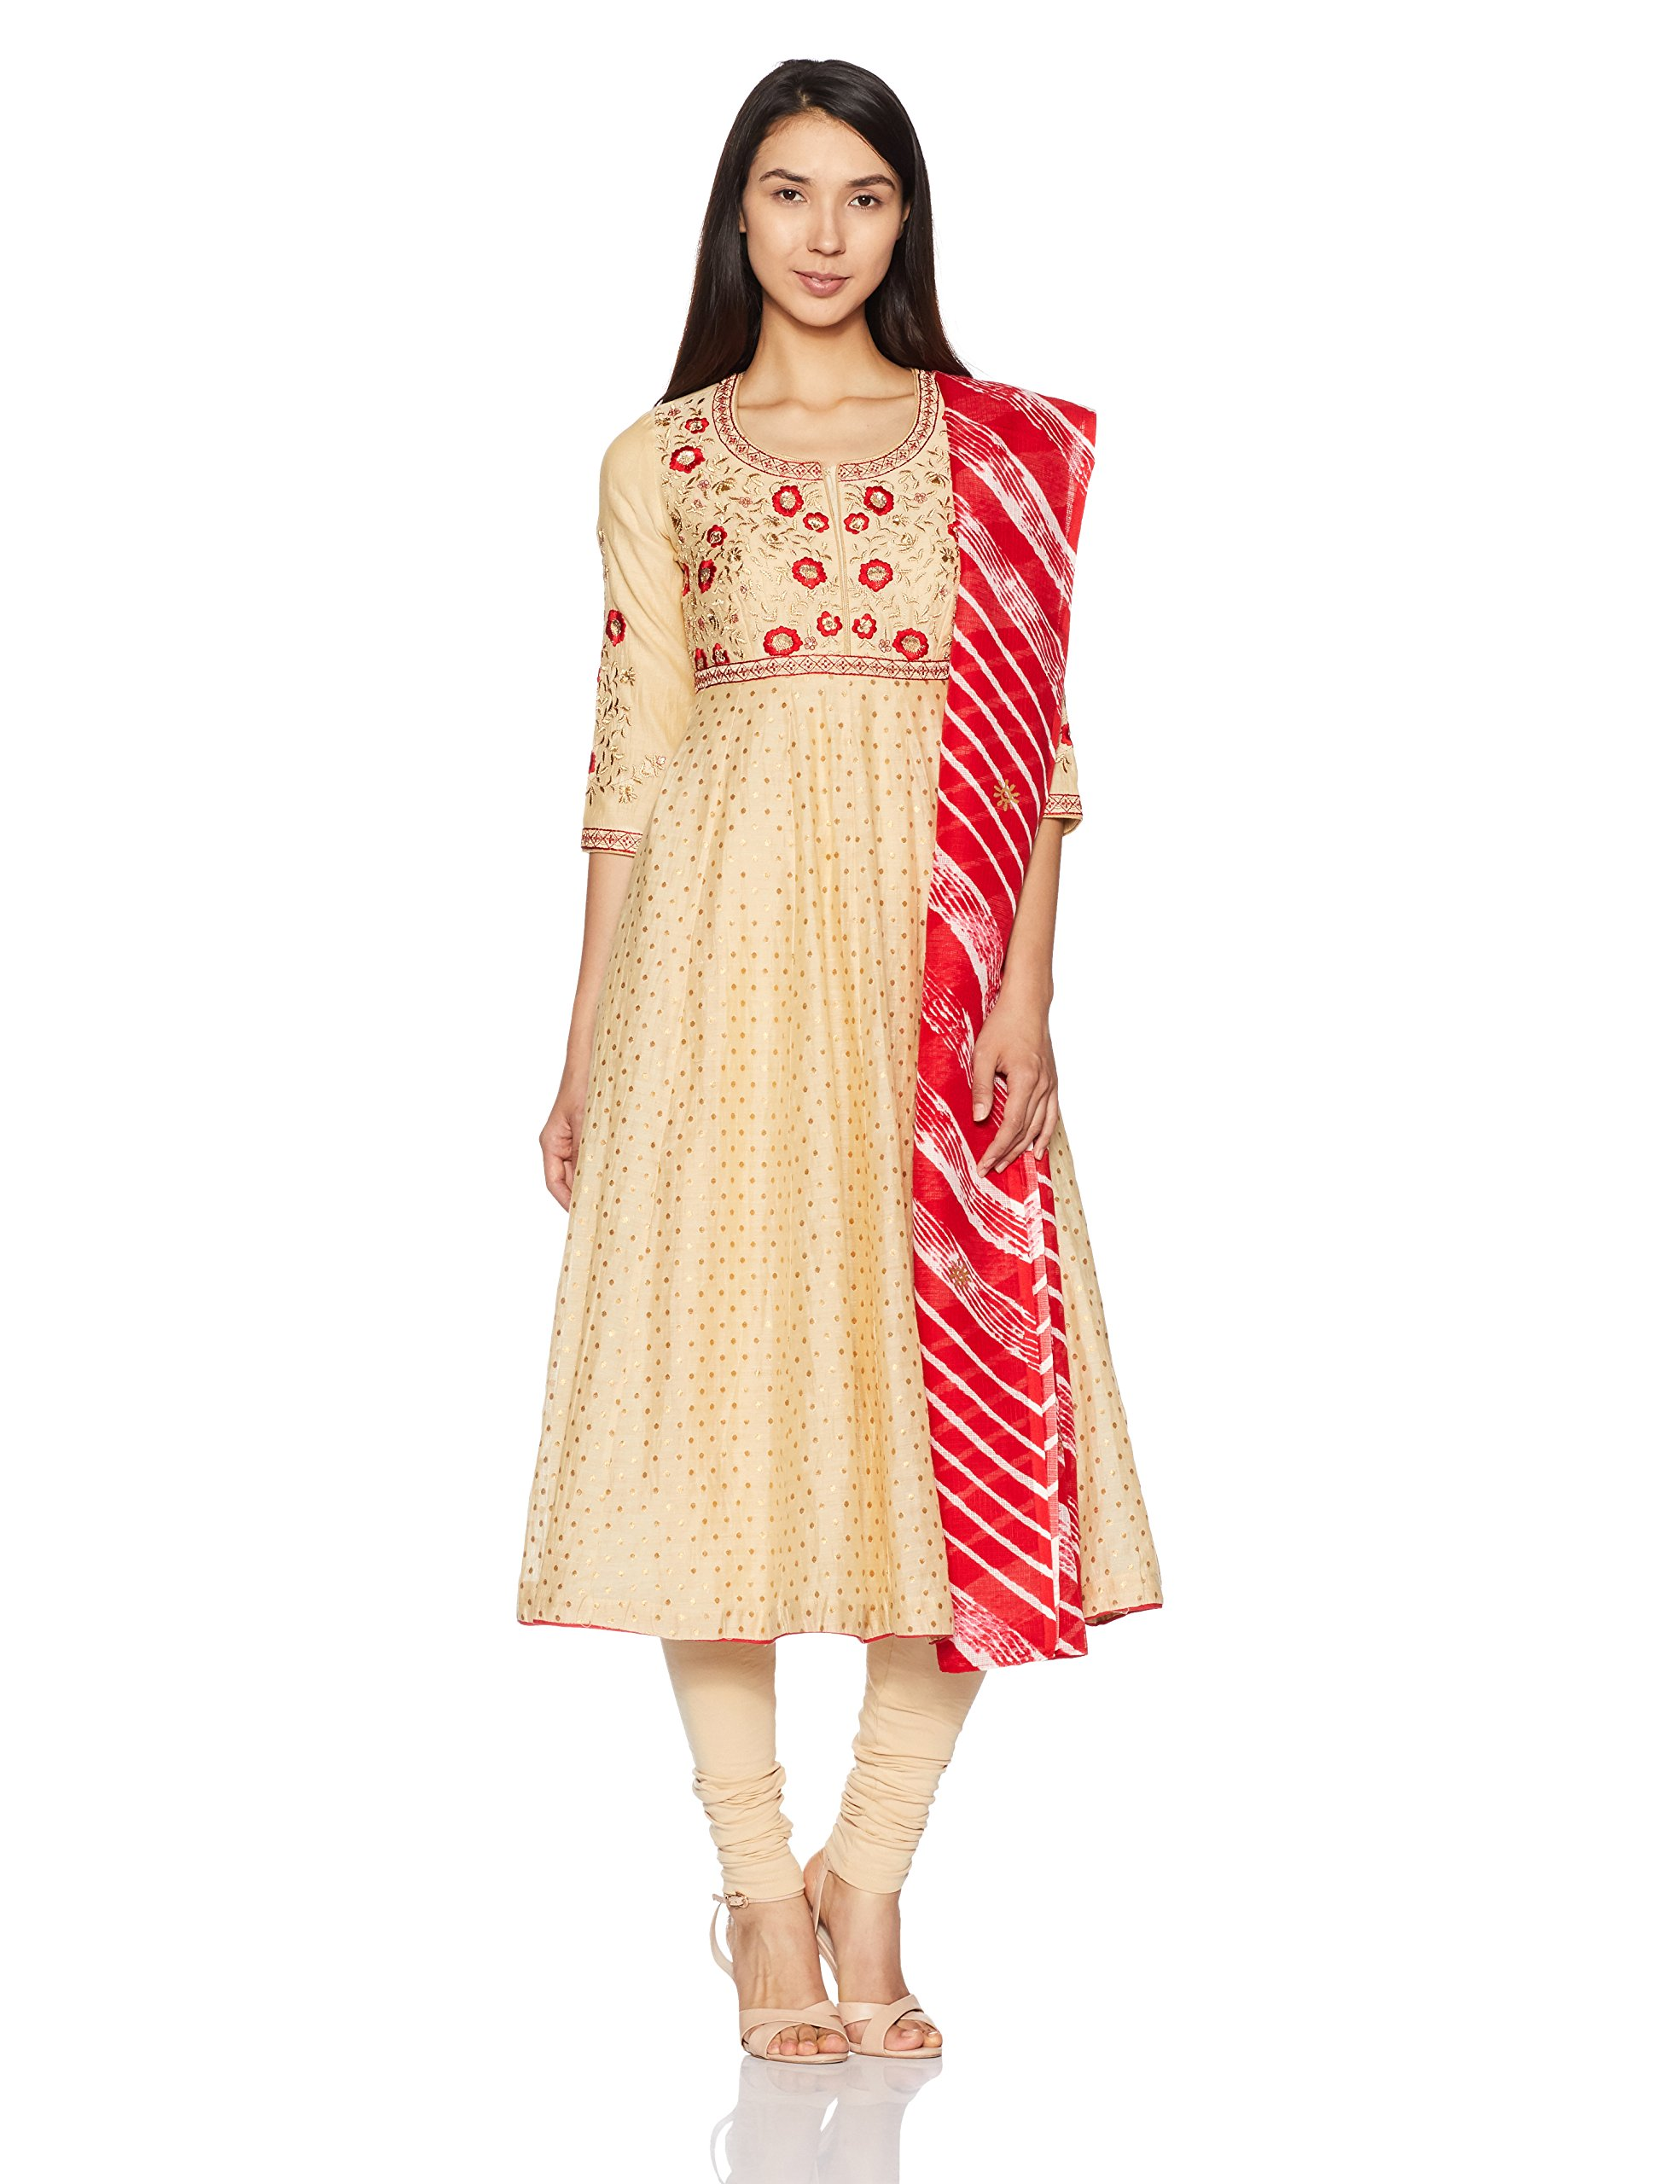 BIBA Women's Anarkali Poly Cotton Suit Set 32 Beige by Biba (Image #1)